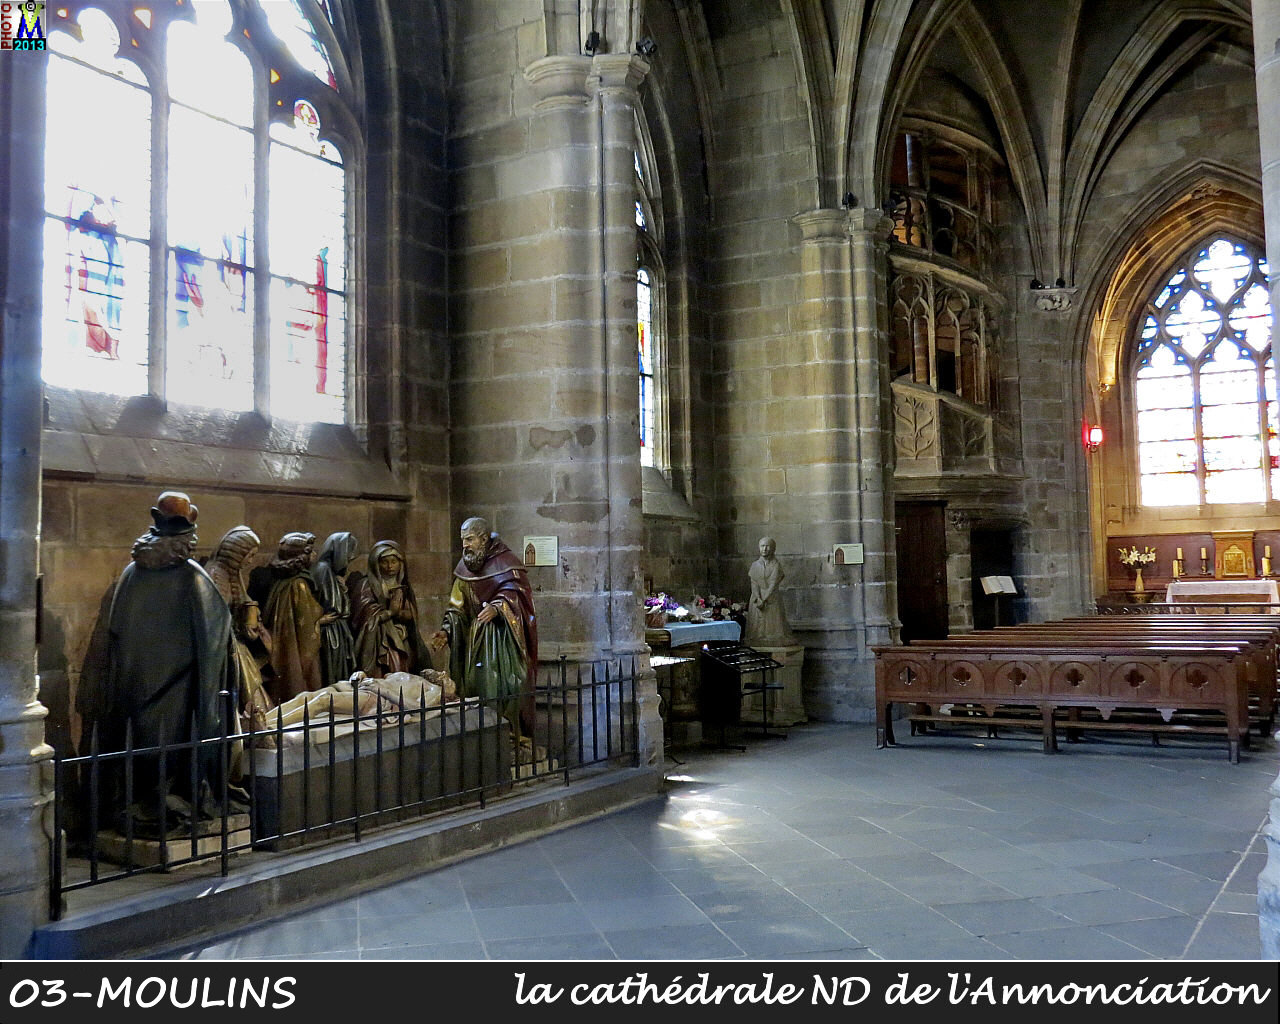 03MOULINS_cathedrale_204.jpg